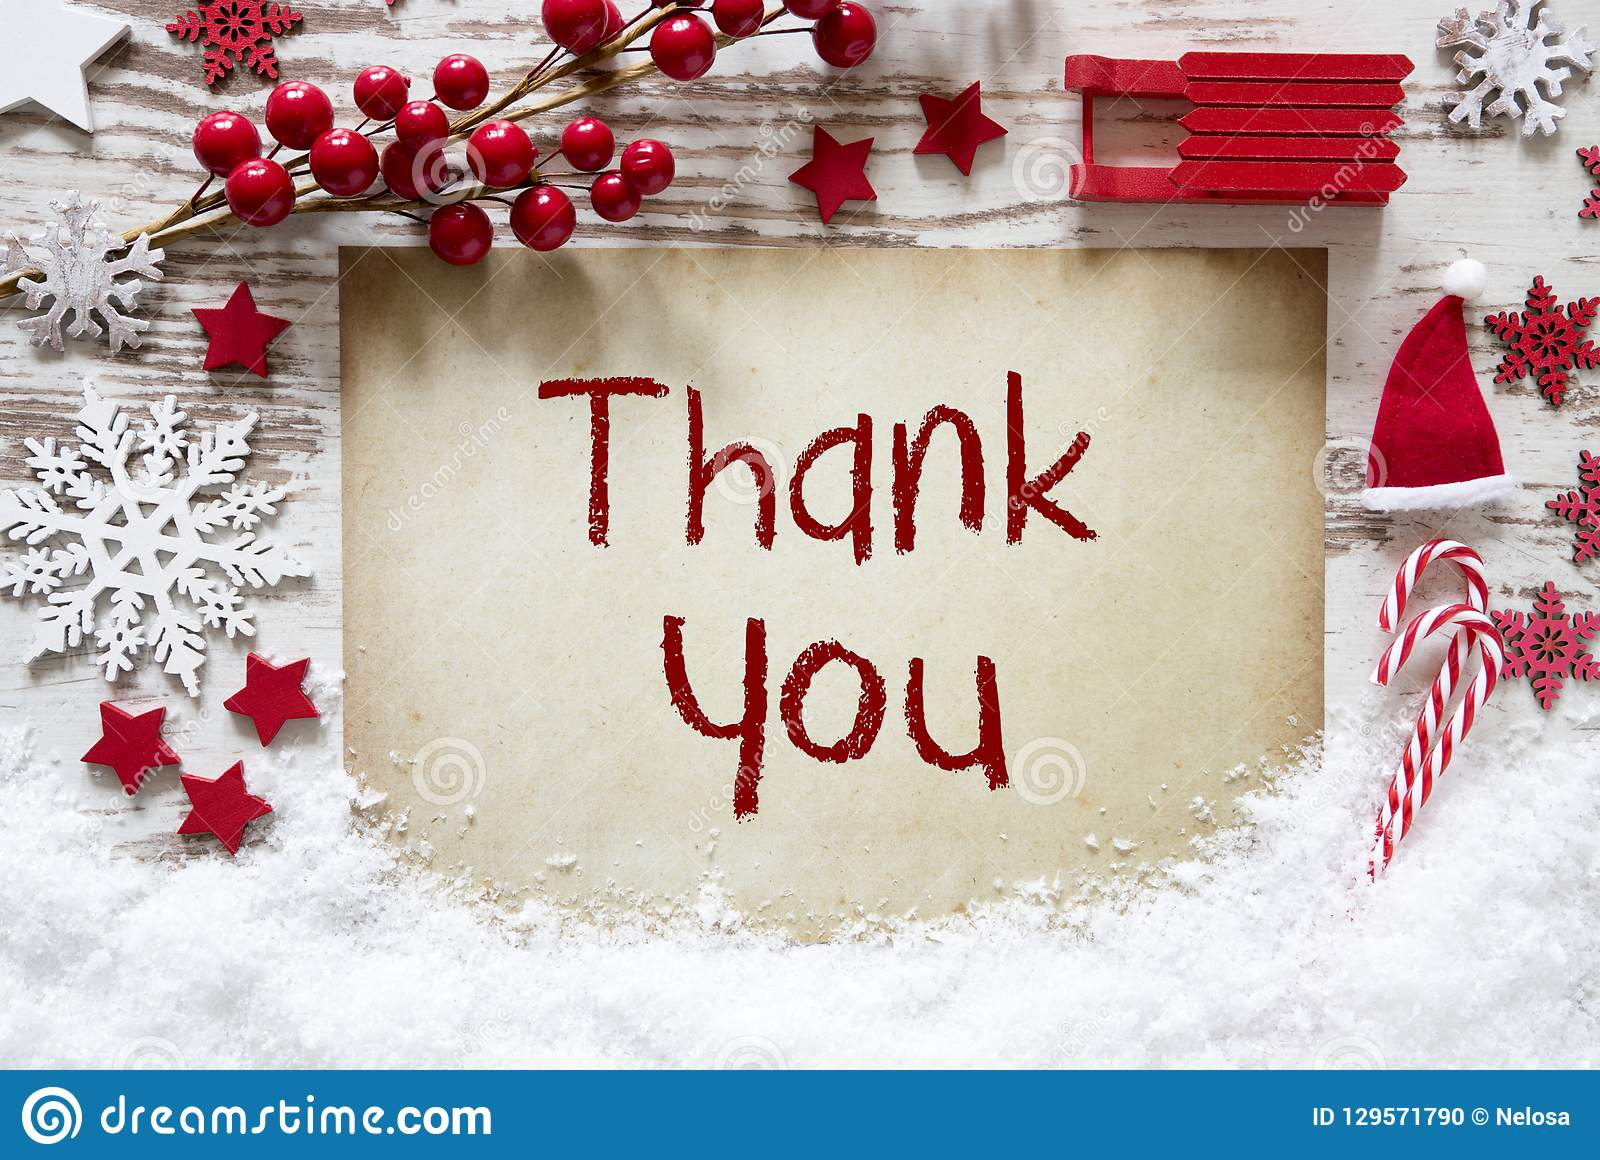 dd9b35370df51 Paper With English Text Thank You. Rustic White Christmas Flat Lay With  Snow. Red Decoration Like Santa Hat